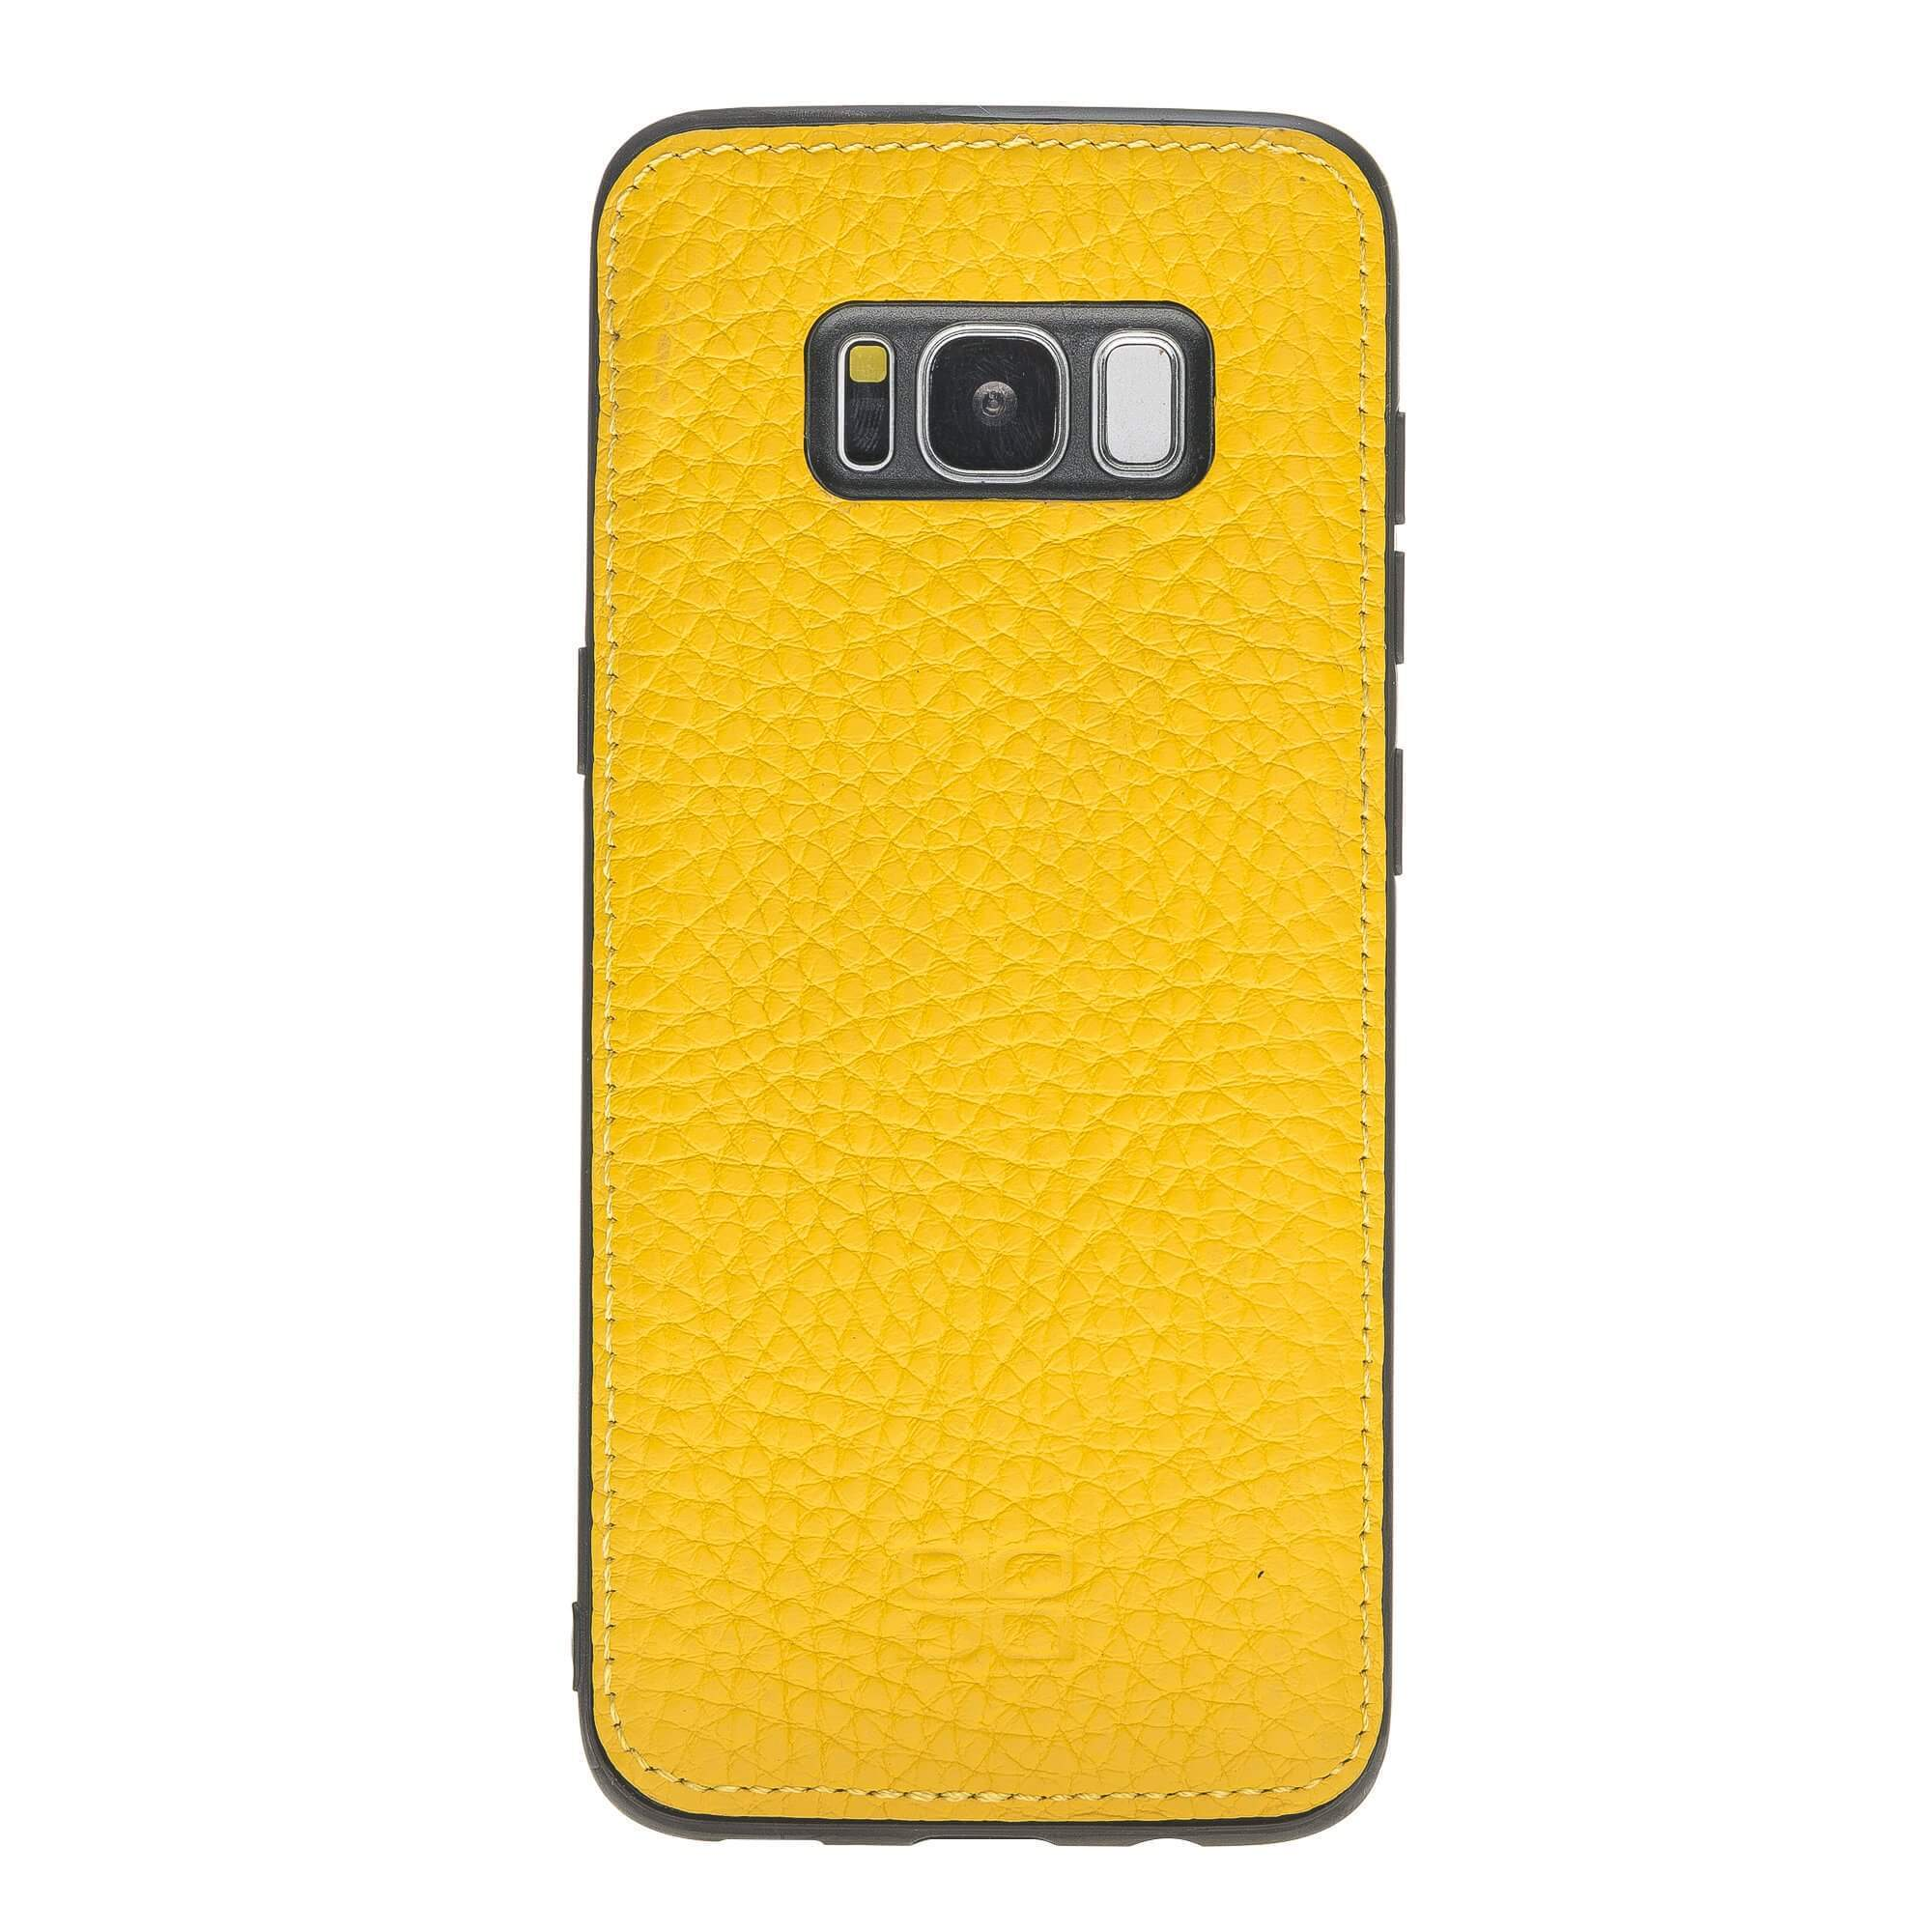 Wallet Case Magnetic Detachable Leather Wallet Case for Samsung S8 Plus - Floater Yellow Bouletta Case